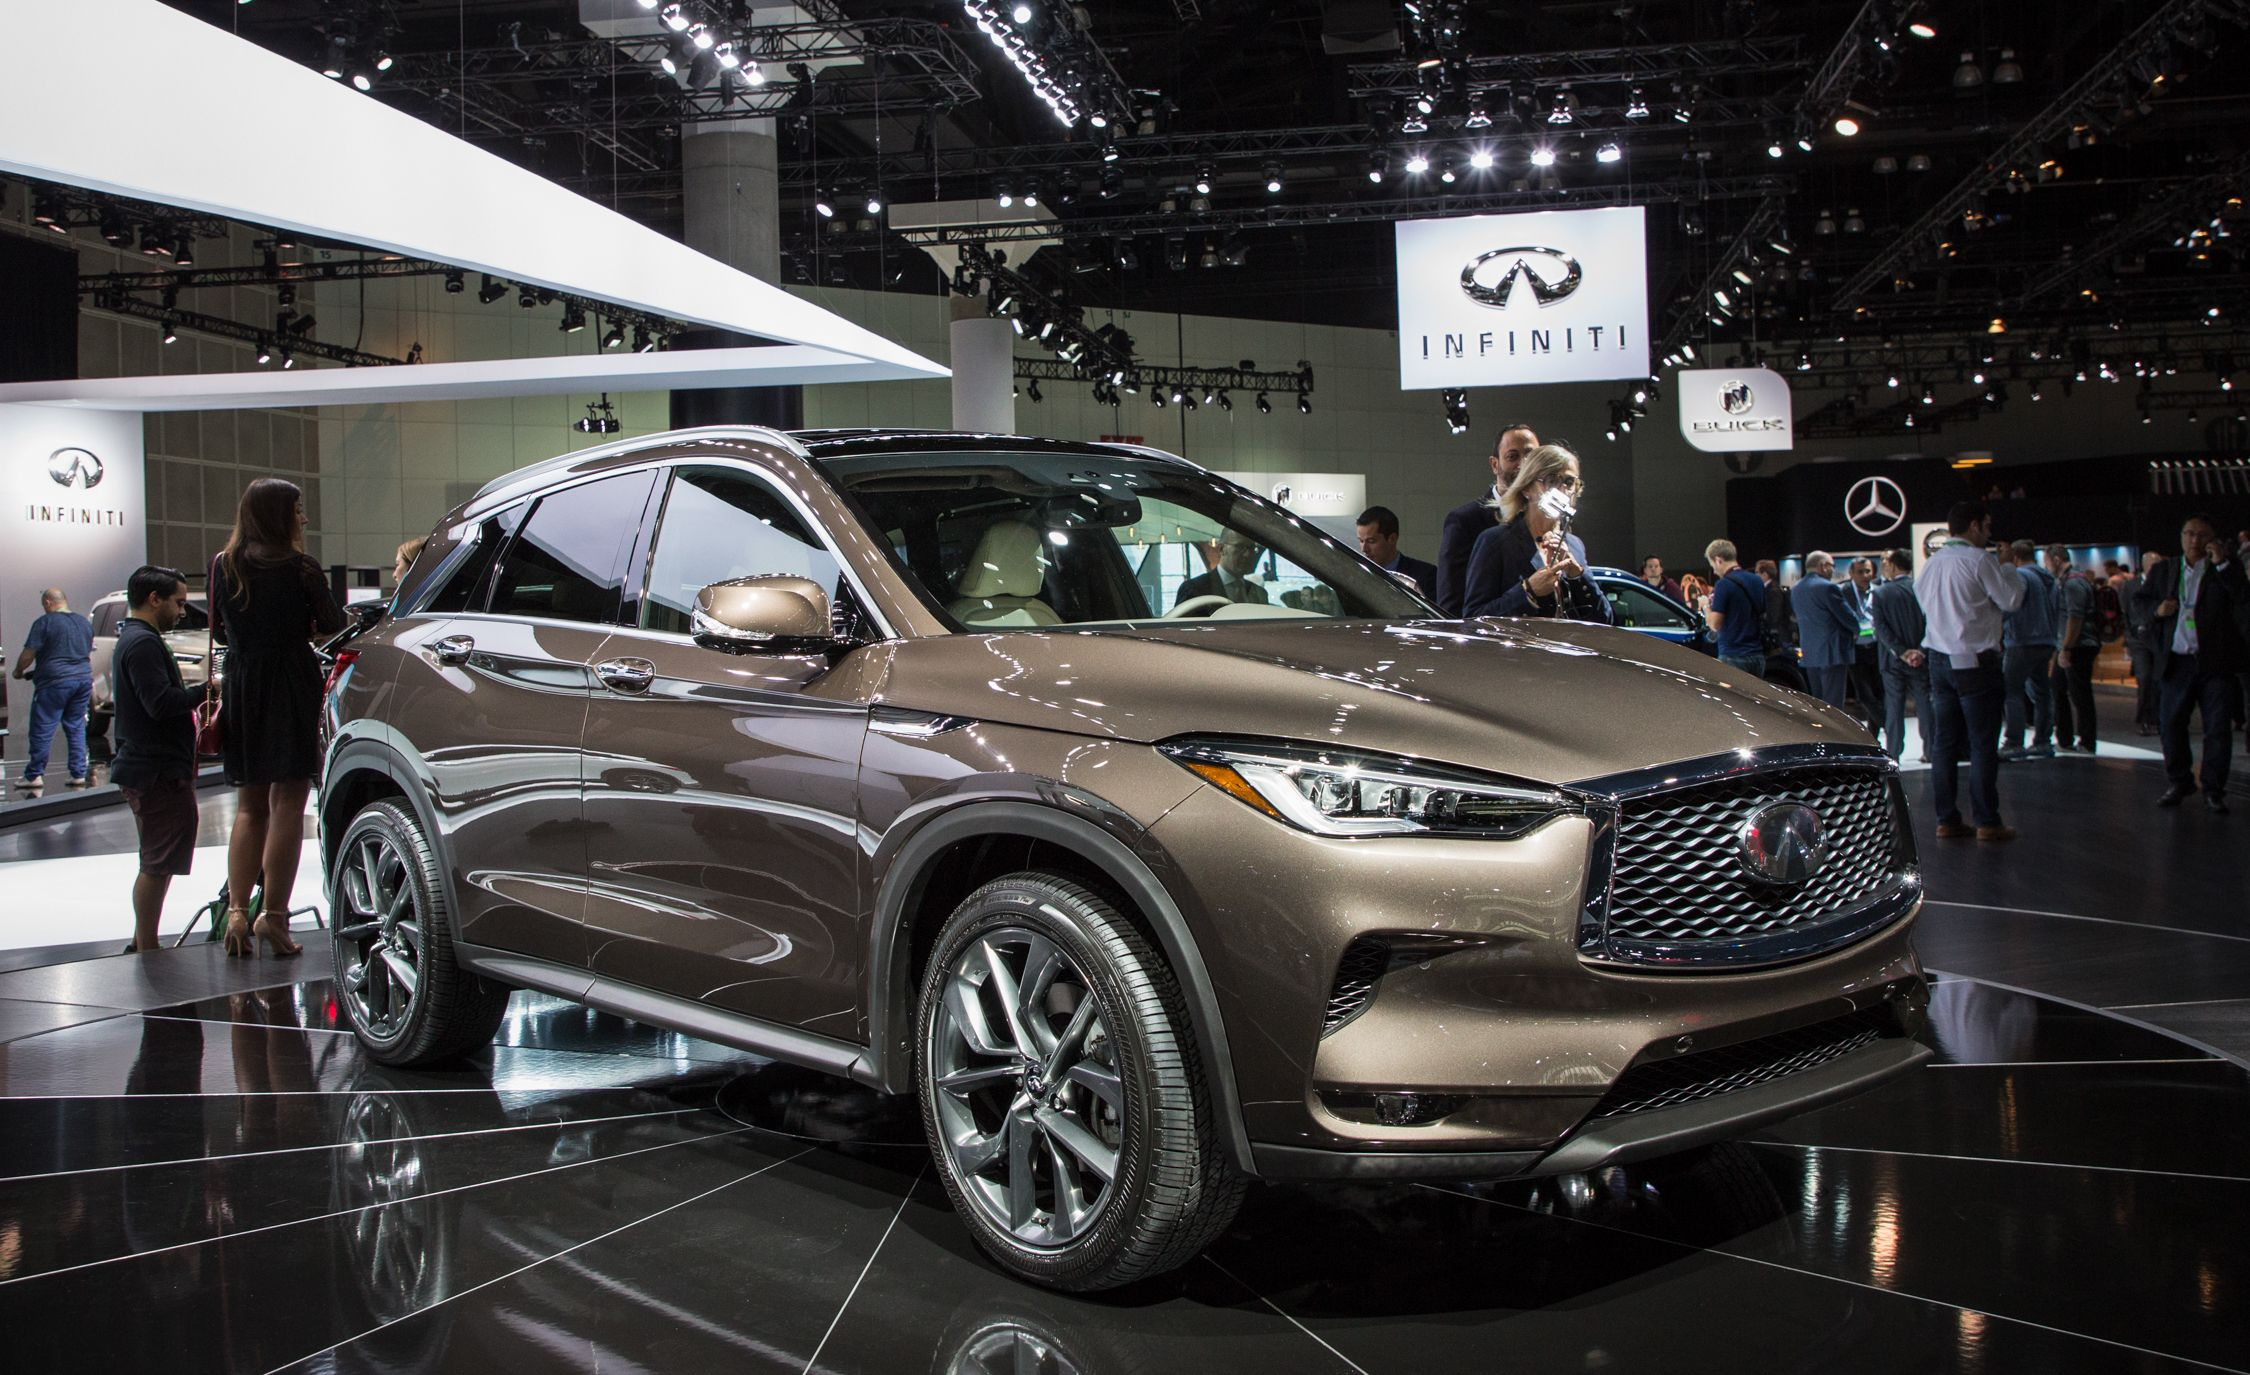 Infiniti Qx 50 2019 >> 2019 Infiniti Qx50 All New Compact Luxury Crossover Boasts Radical